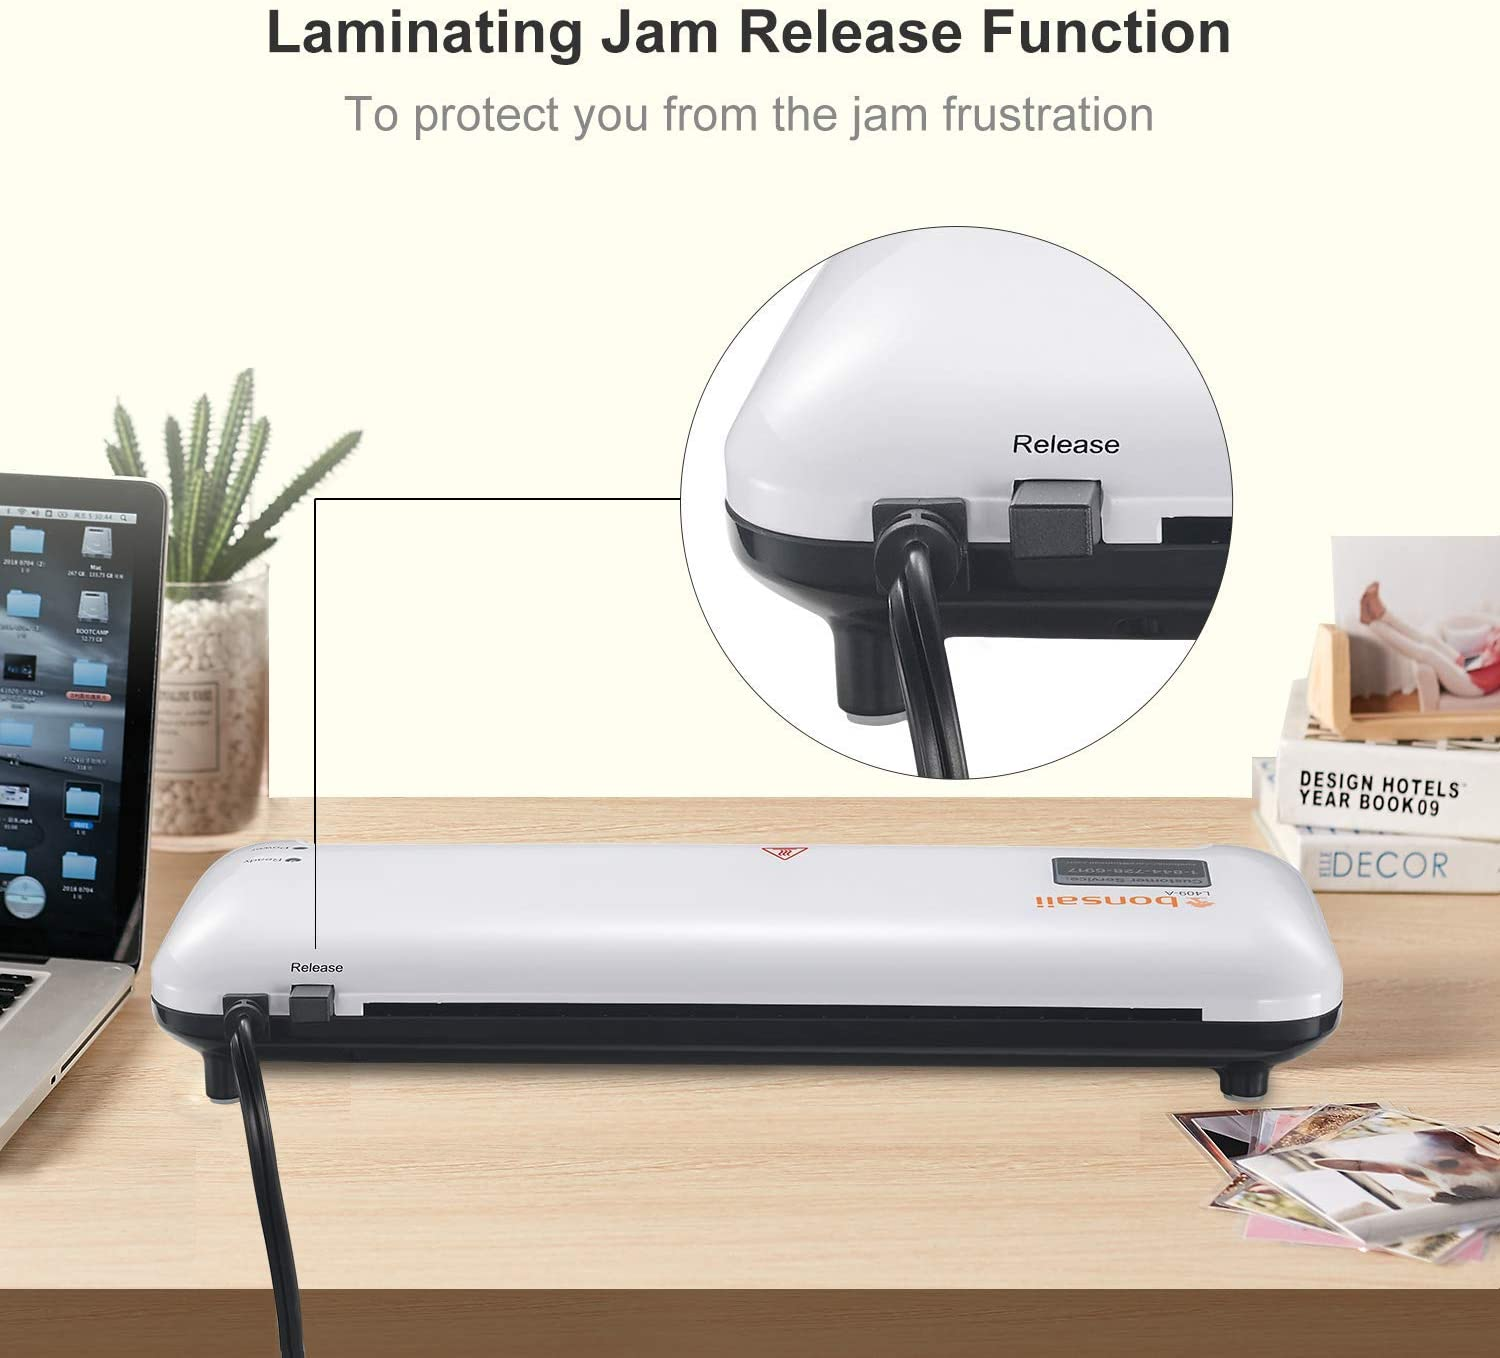 Paper Trimmer Bonsaii Thermal Laminator Machine 9.5-Inch Laminating Wide for Document//Photo//Card Hot /& Cold Laminators for Office//Home//School with 25 Laminating Pouches L409 4 in1 Renewed Corner Rounder